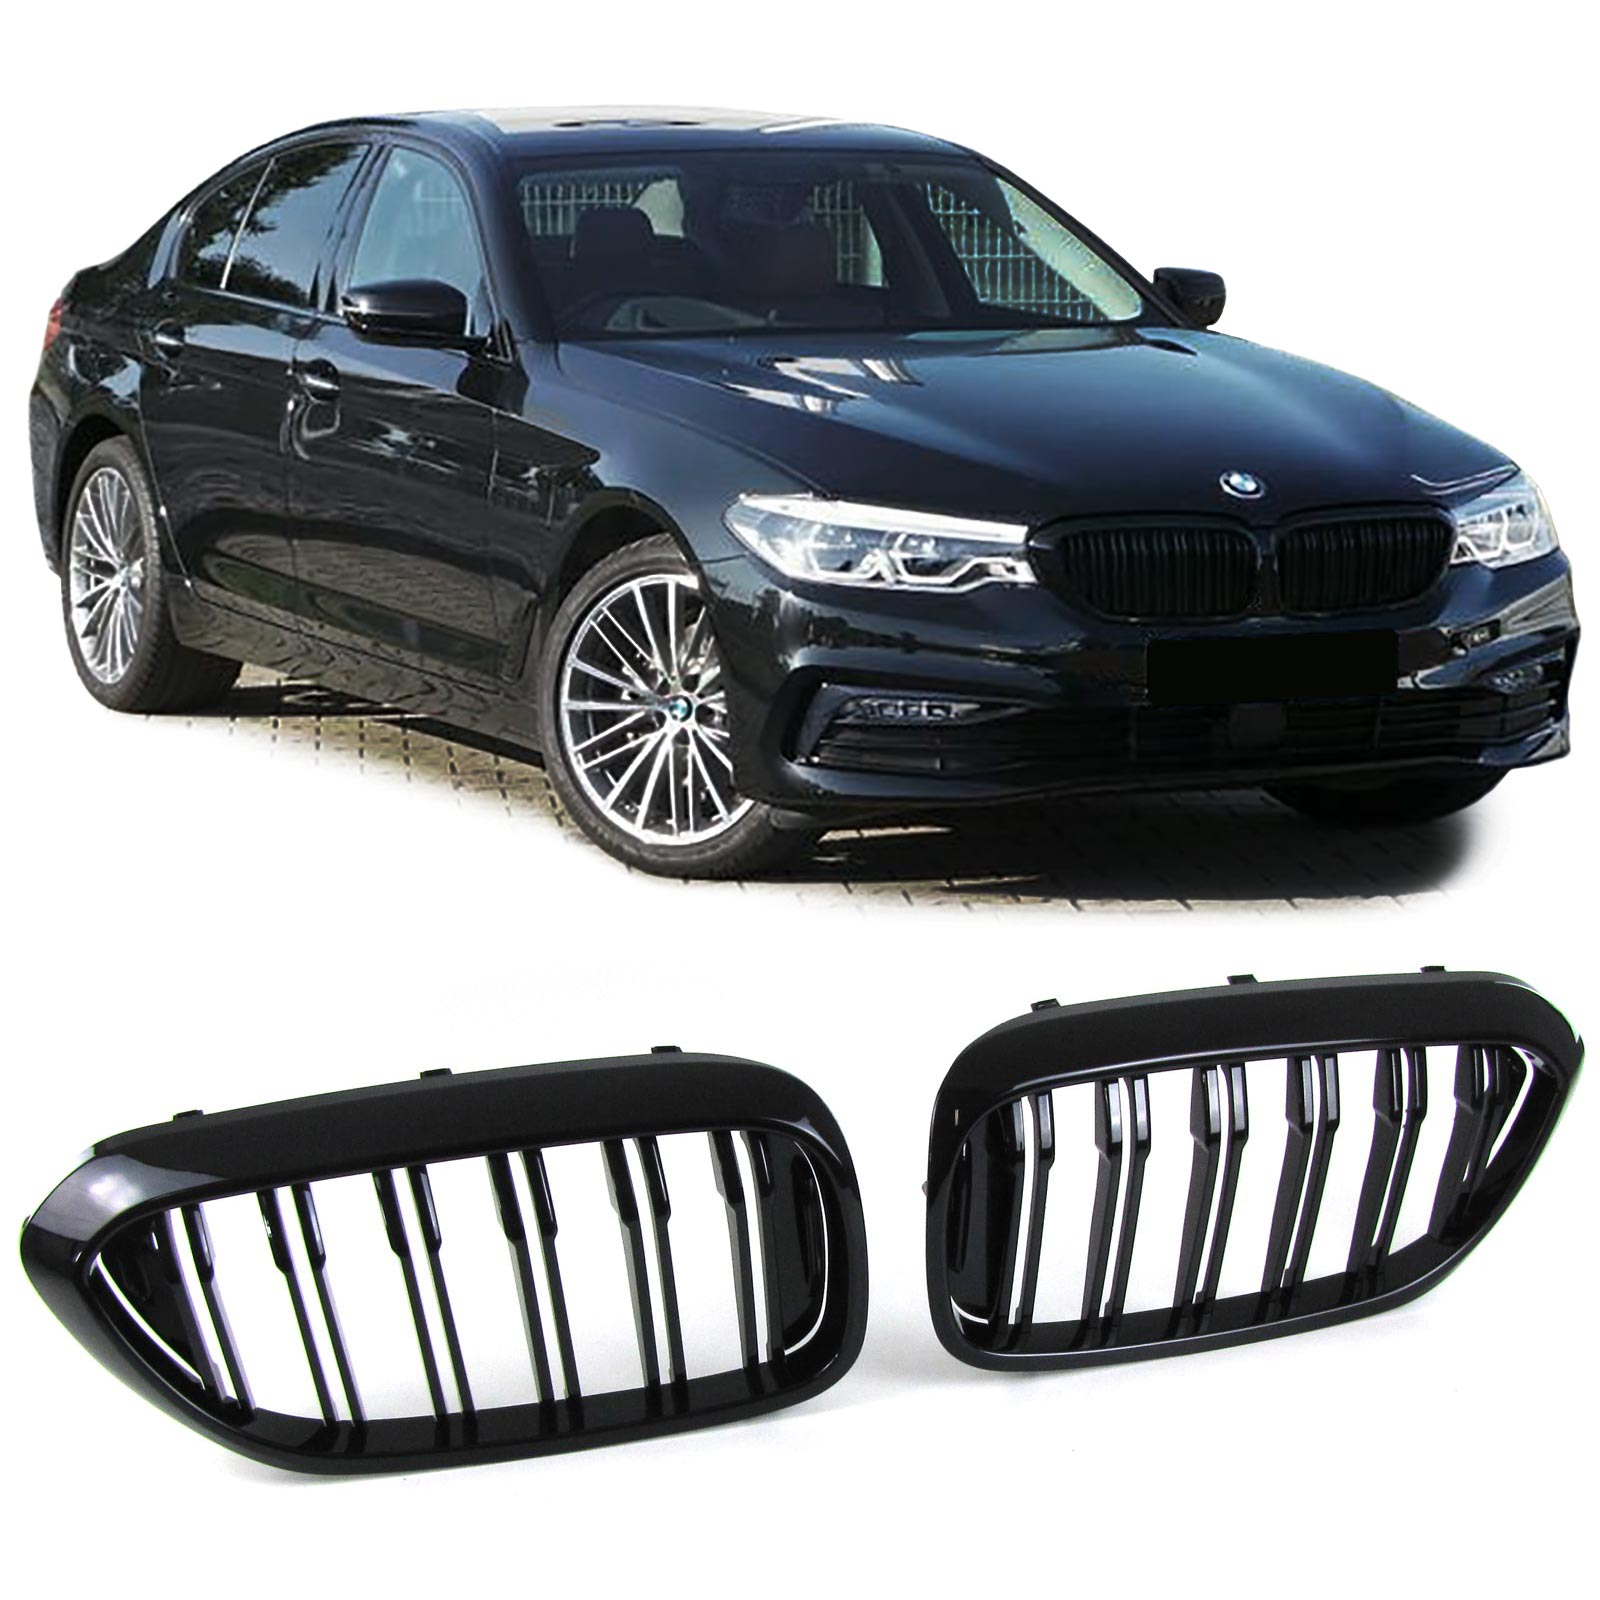 Grill G30/ G31